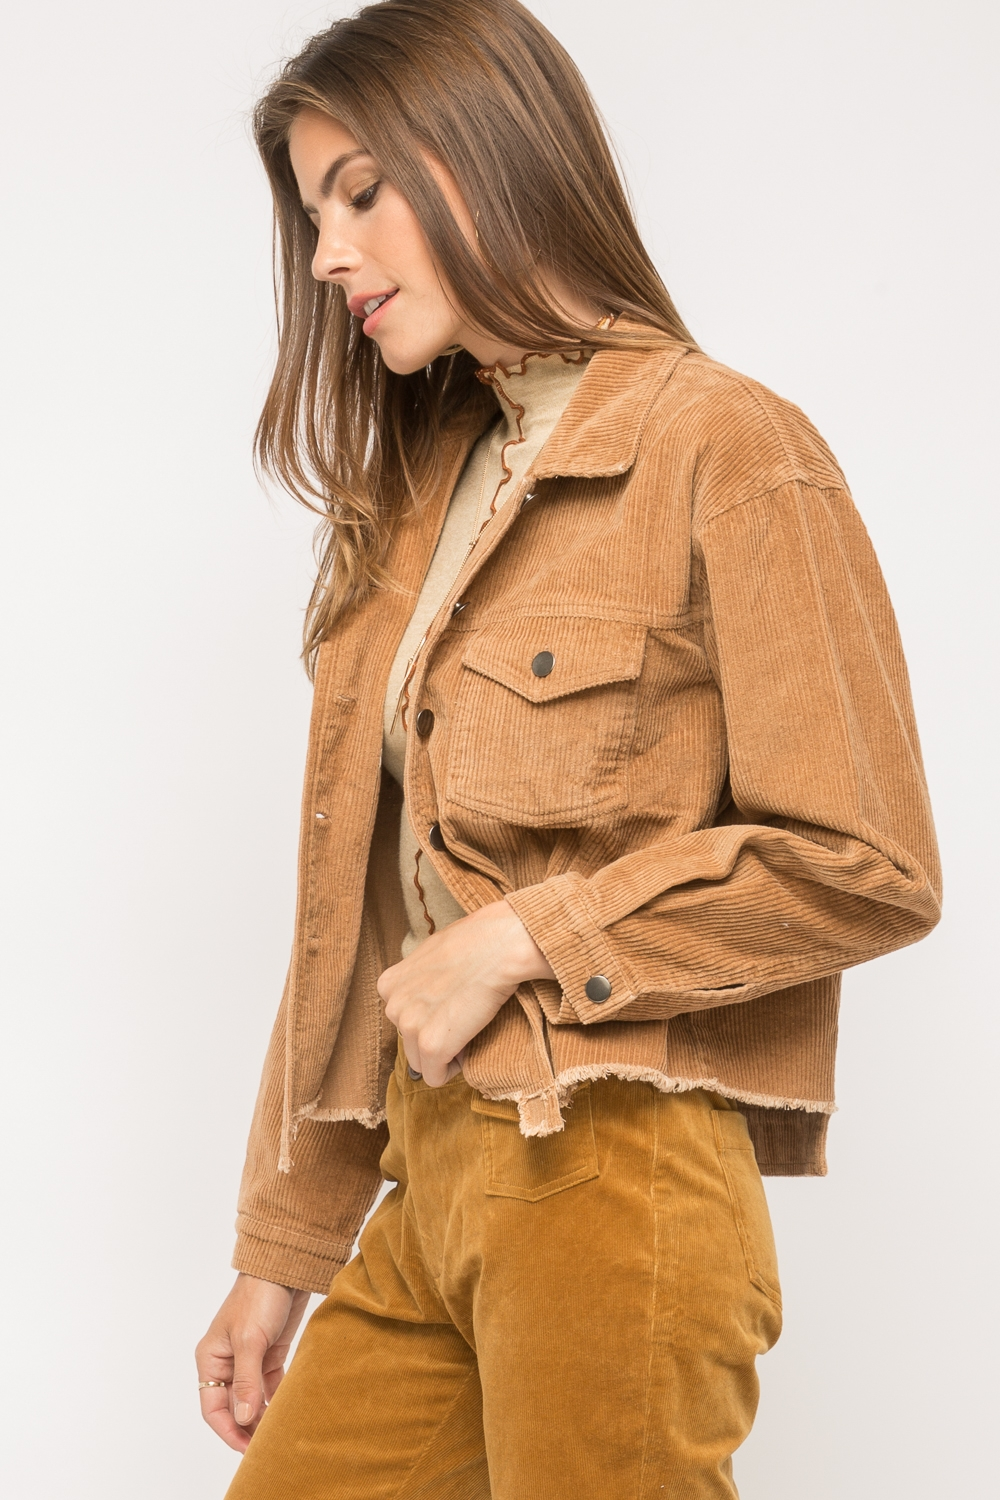 Stone Washed Corduroy Crop Jacket from Mystree